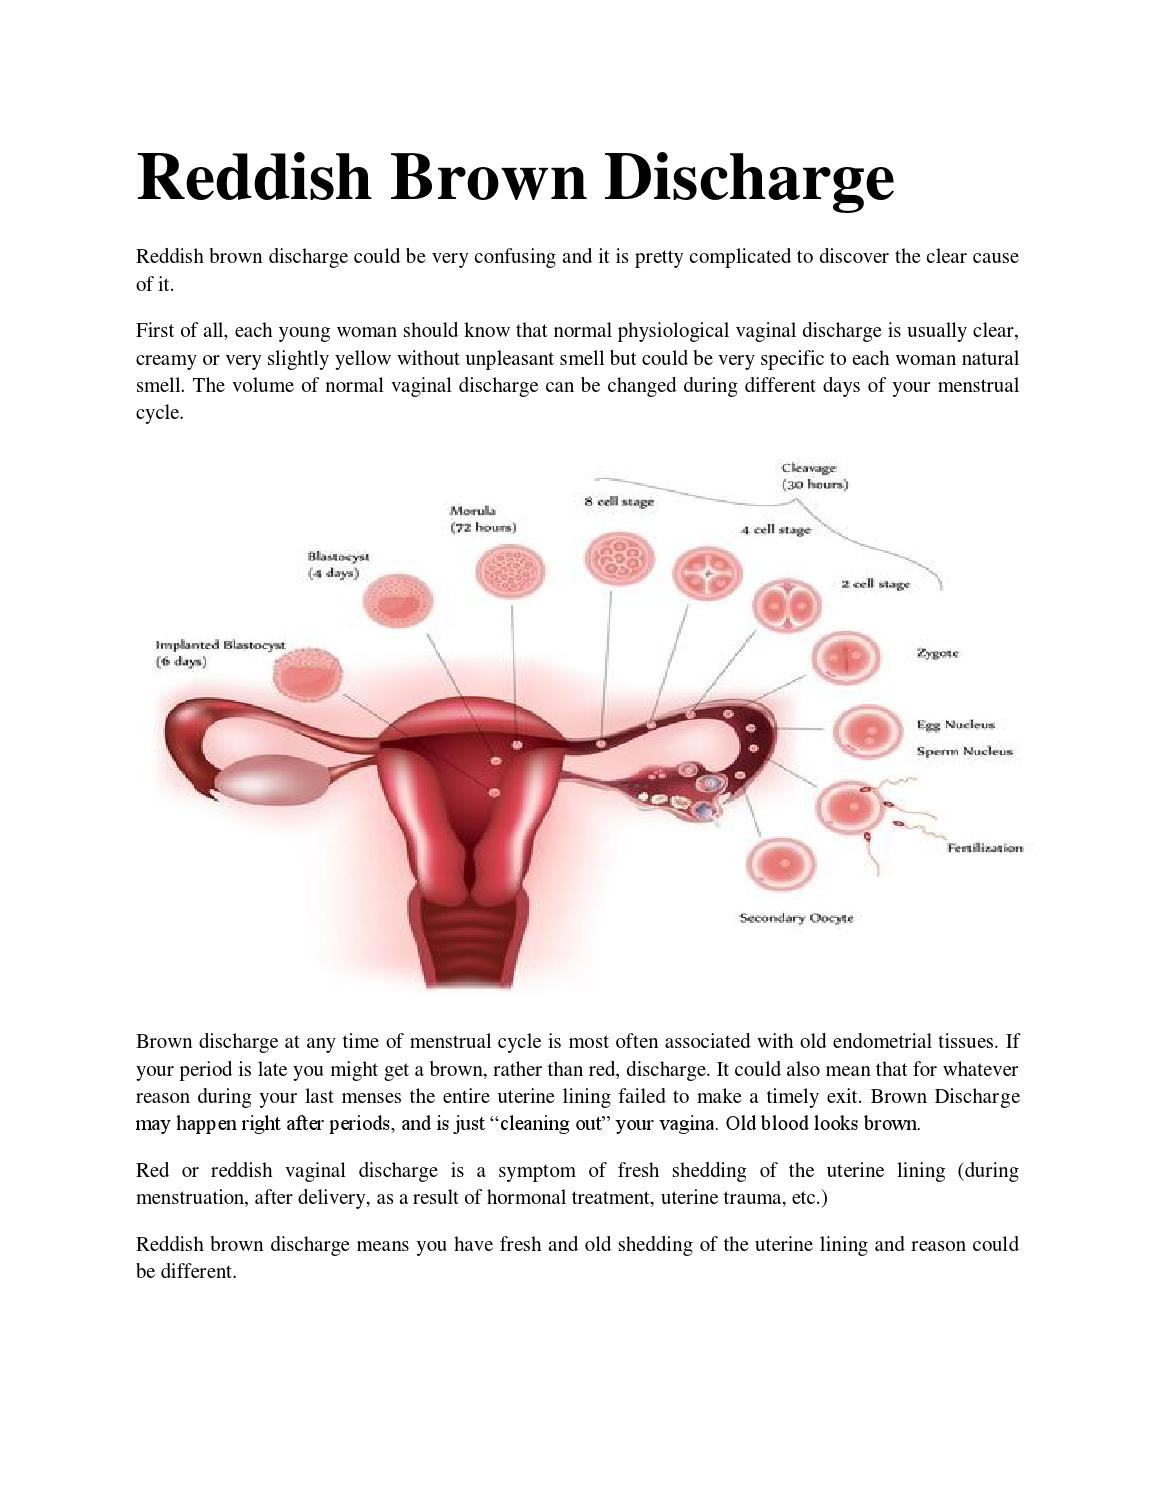 Reddish Brown Discharge By Brown Discharge - Issuu-8022